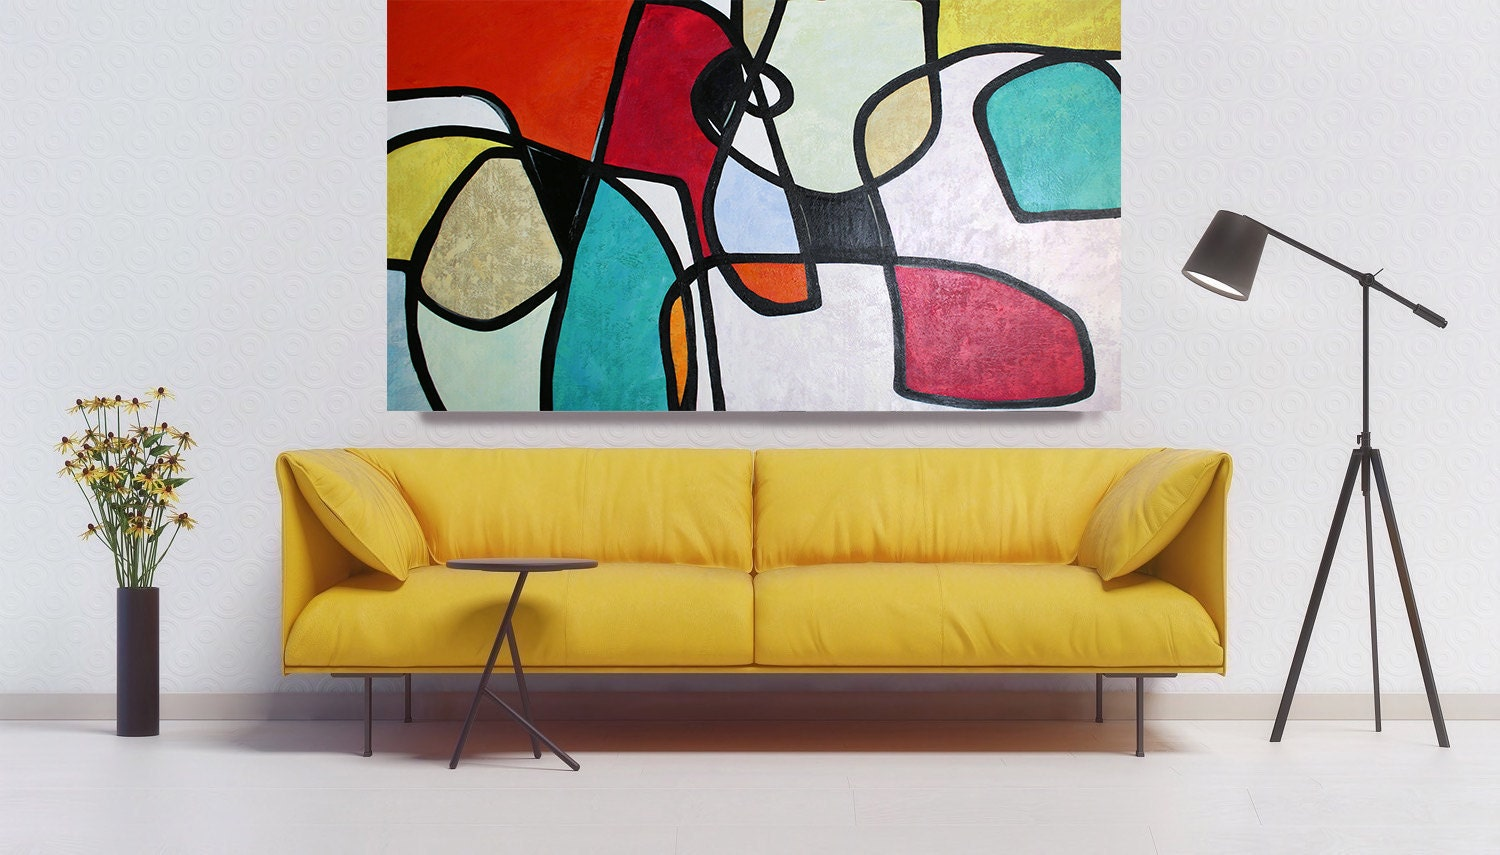 Vibrant Abstract Art, Colorful Abstract Painting, Midcentury Modern ...